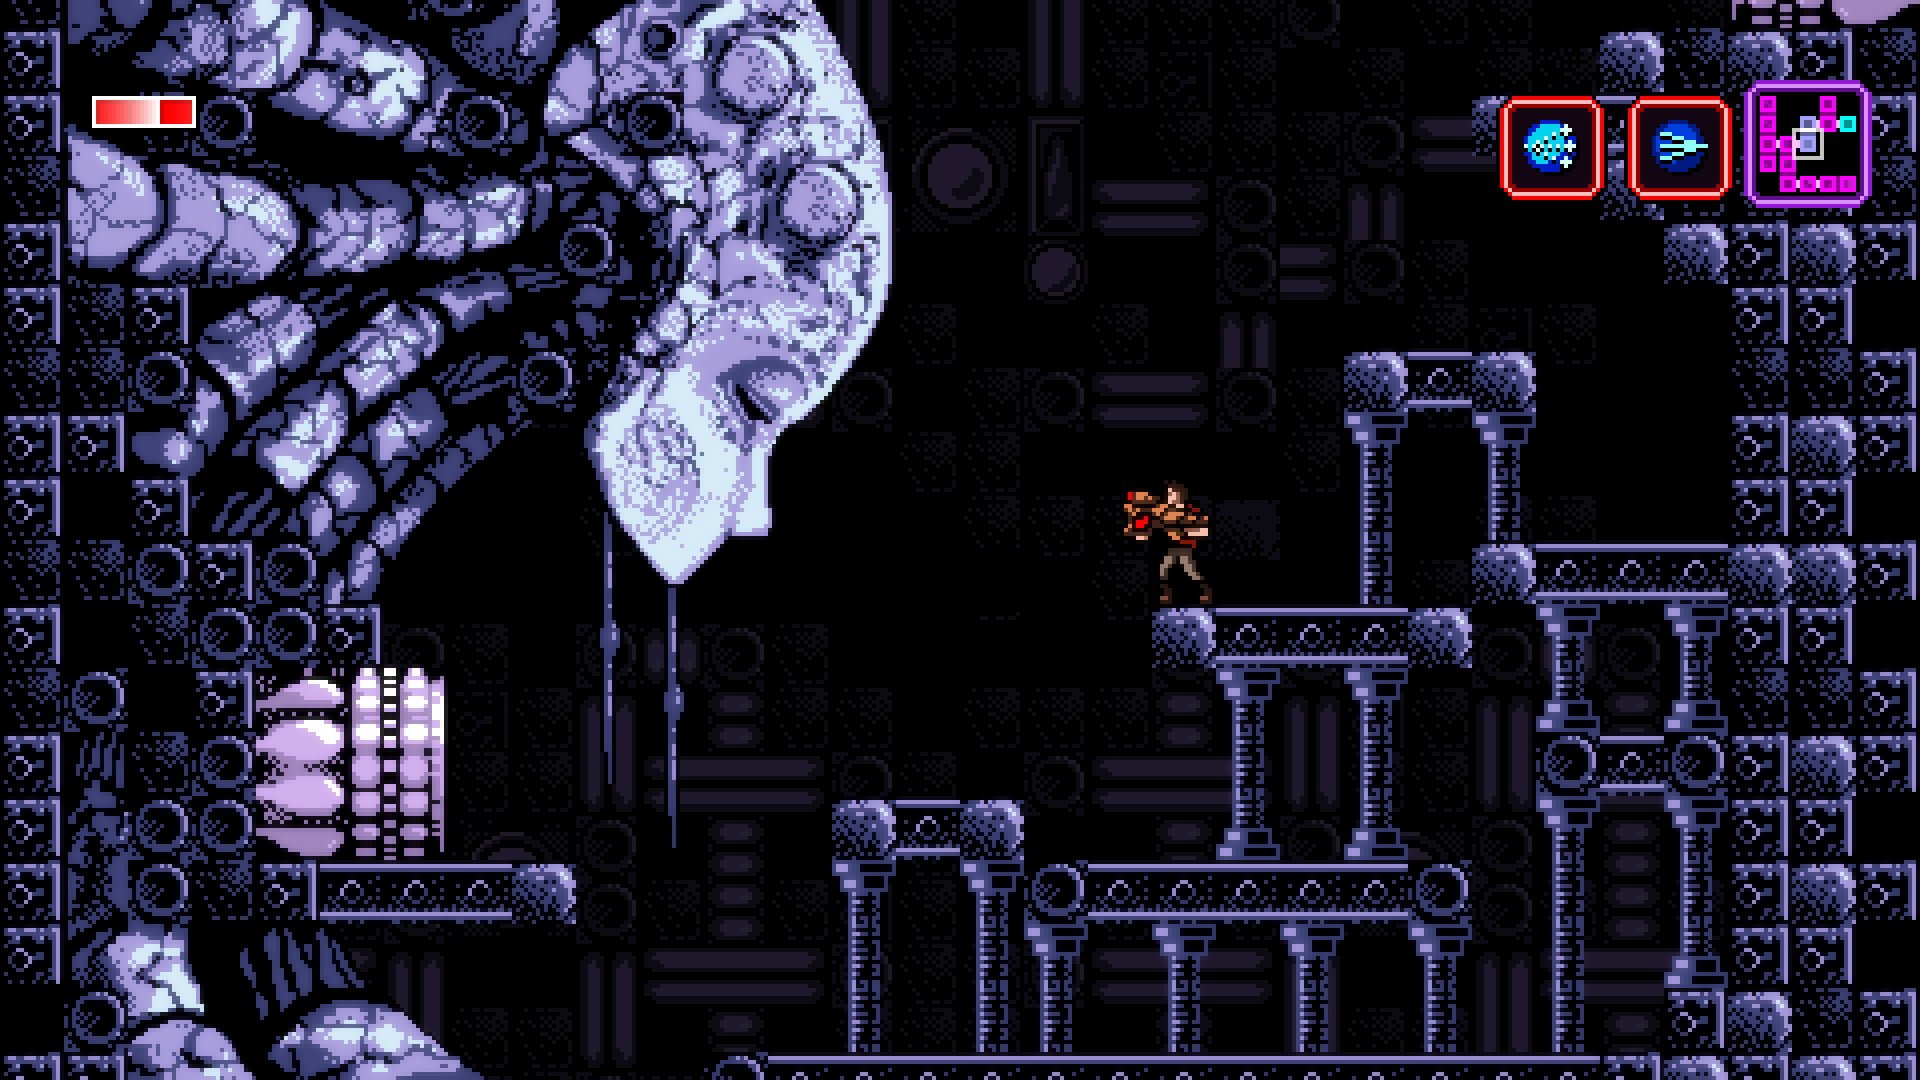 Zenith And Axiom Verge Now Available For Xbox One